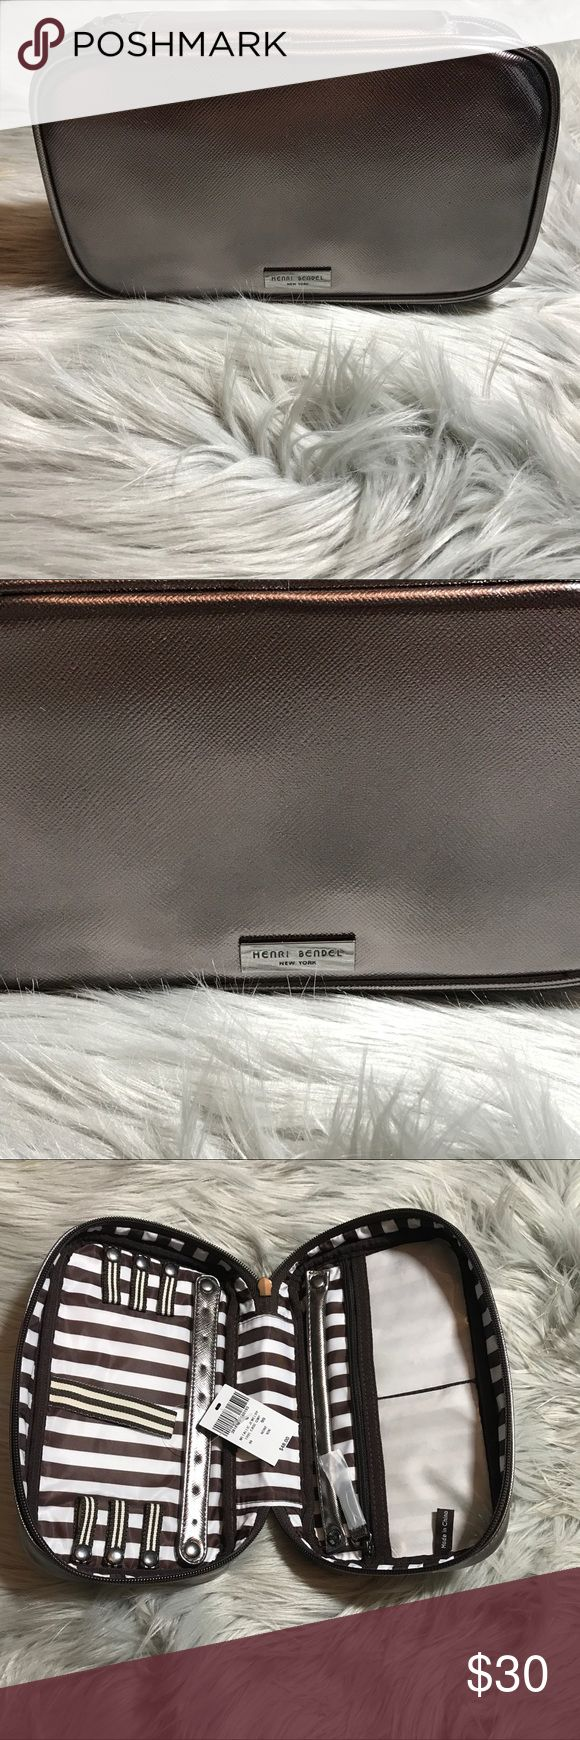 Henri Bendel Metallic Jewelry Travel Case NWT Metallic Jewelry Travel Case. Does not come with dust bag. Perfect to keep all of your Jewelry in place while traveling. henri bendel Bags Travel Bags